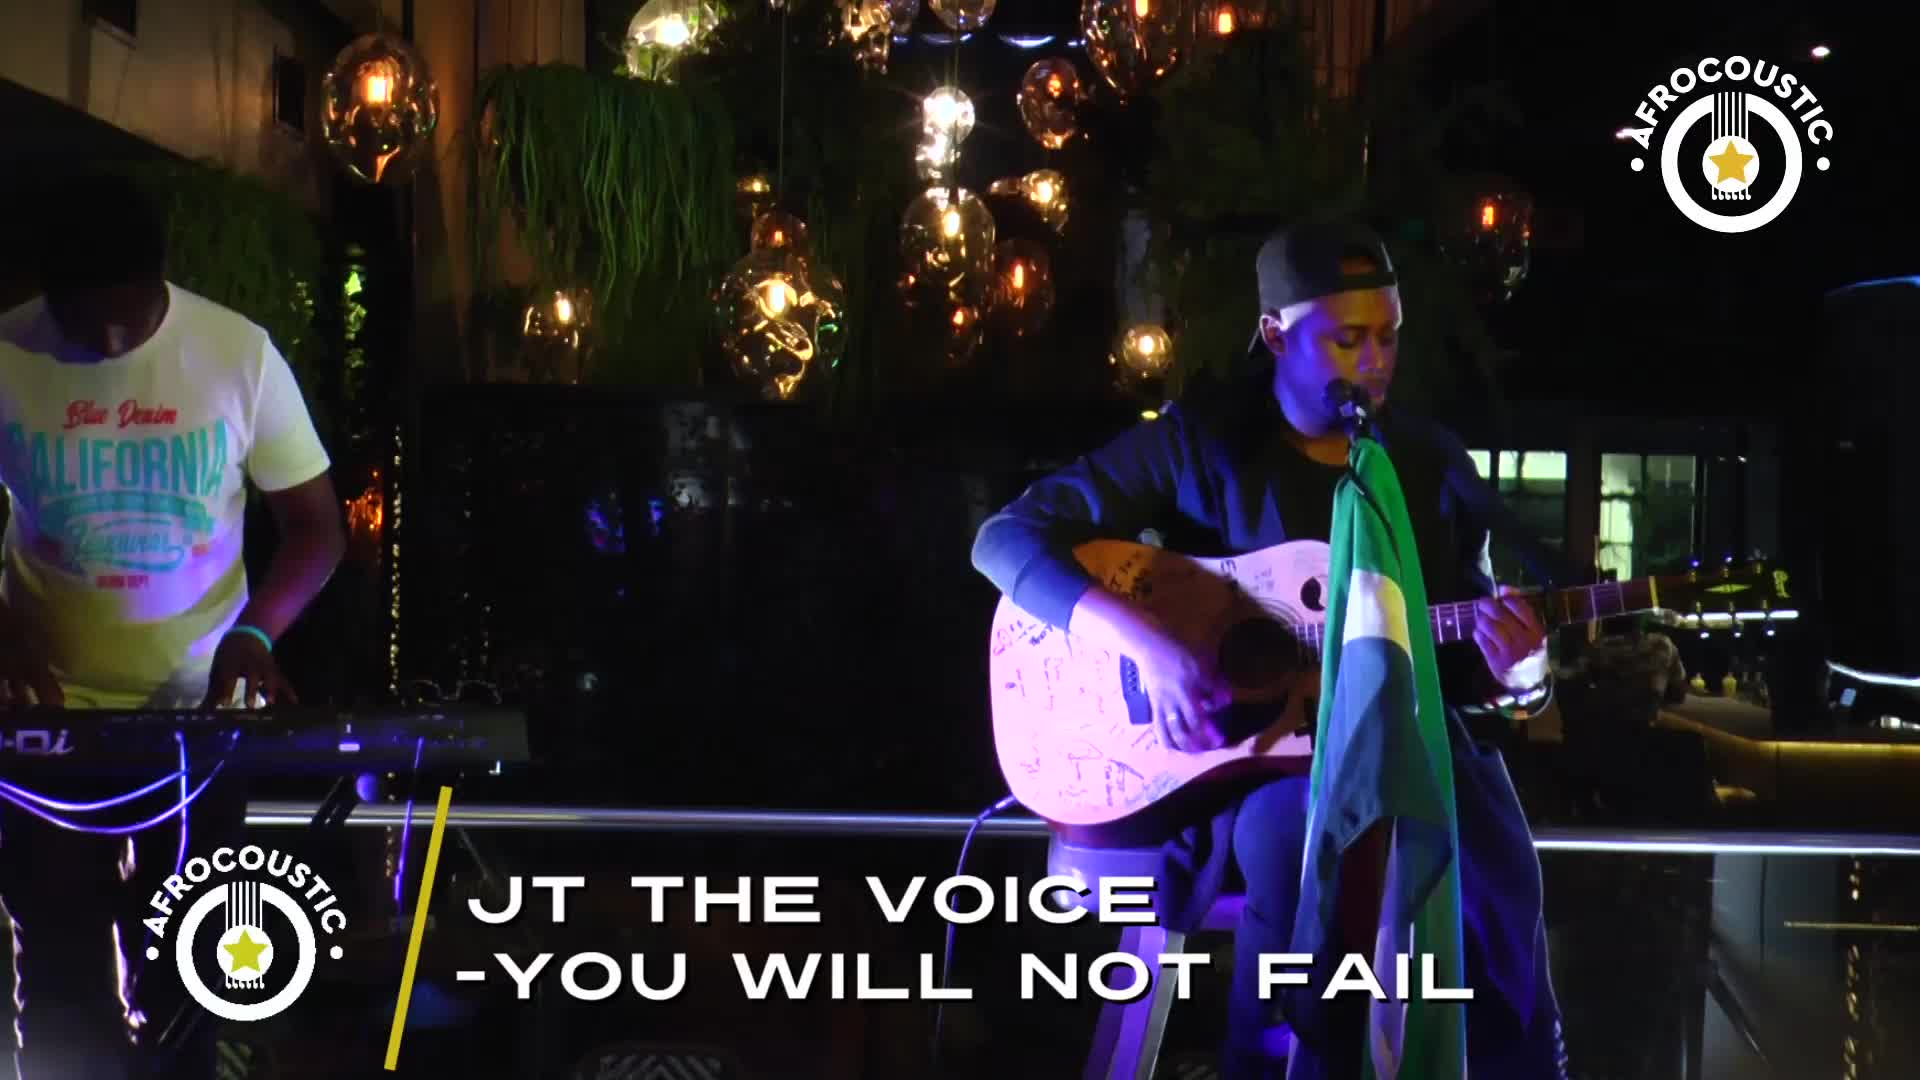 Afrocoustic - JT The Voice - You Will Not Fail